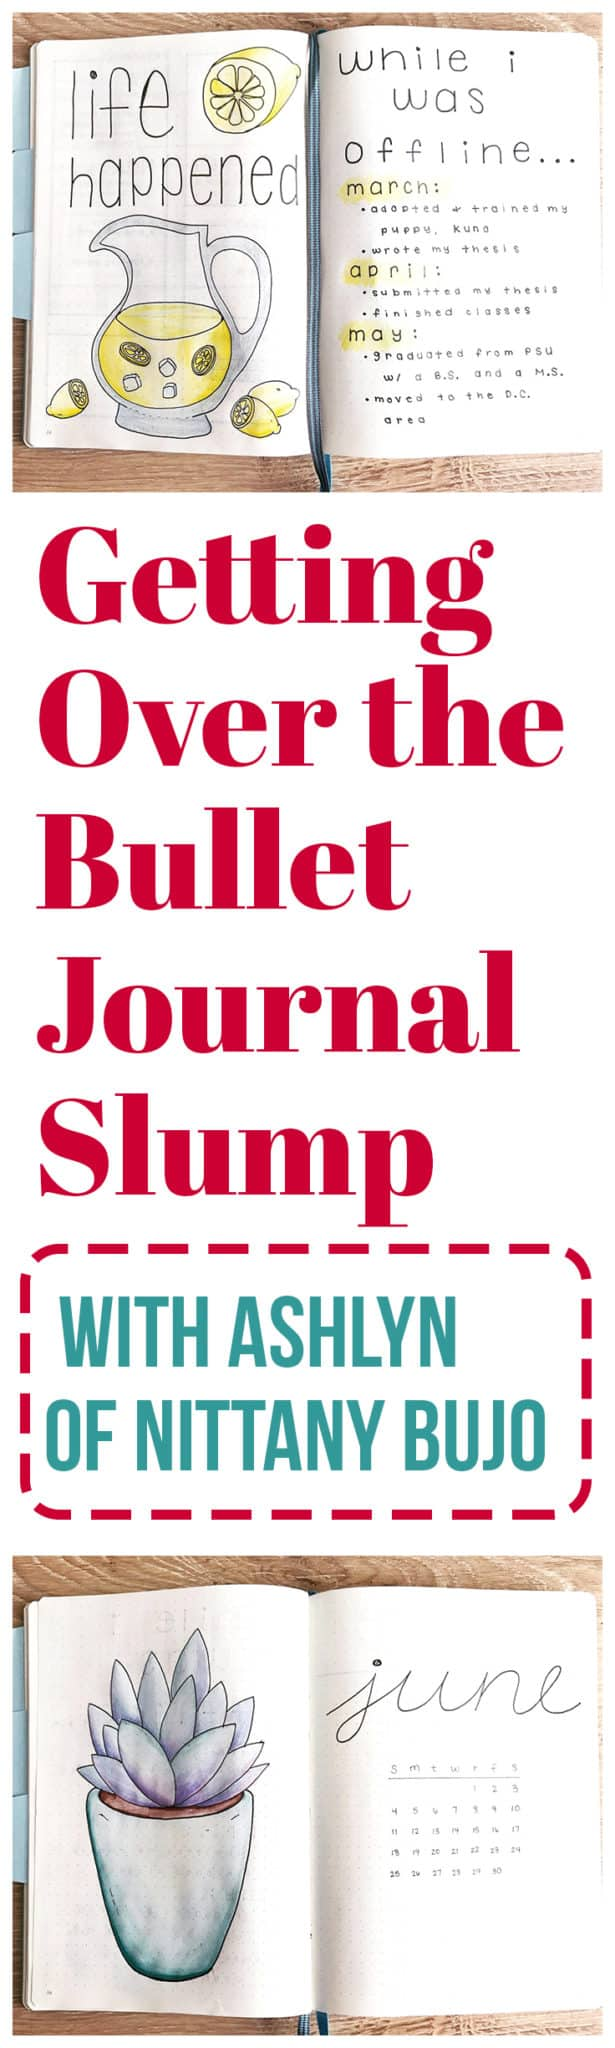 Everyone who has fallen in love with the bullet journal has had to deal with the dreaded bullet journal slump at some point or another. You know, where you suddenly feel unmotivated and can't be bothered to pick up your journal? Ashlyn of Nittany Bujo talks about her recent bullet journal slump and how to pull yourself out of it when it hits you.